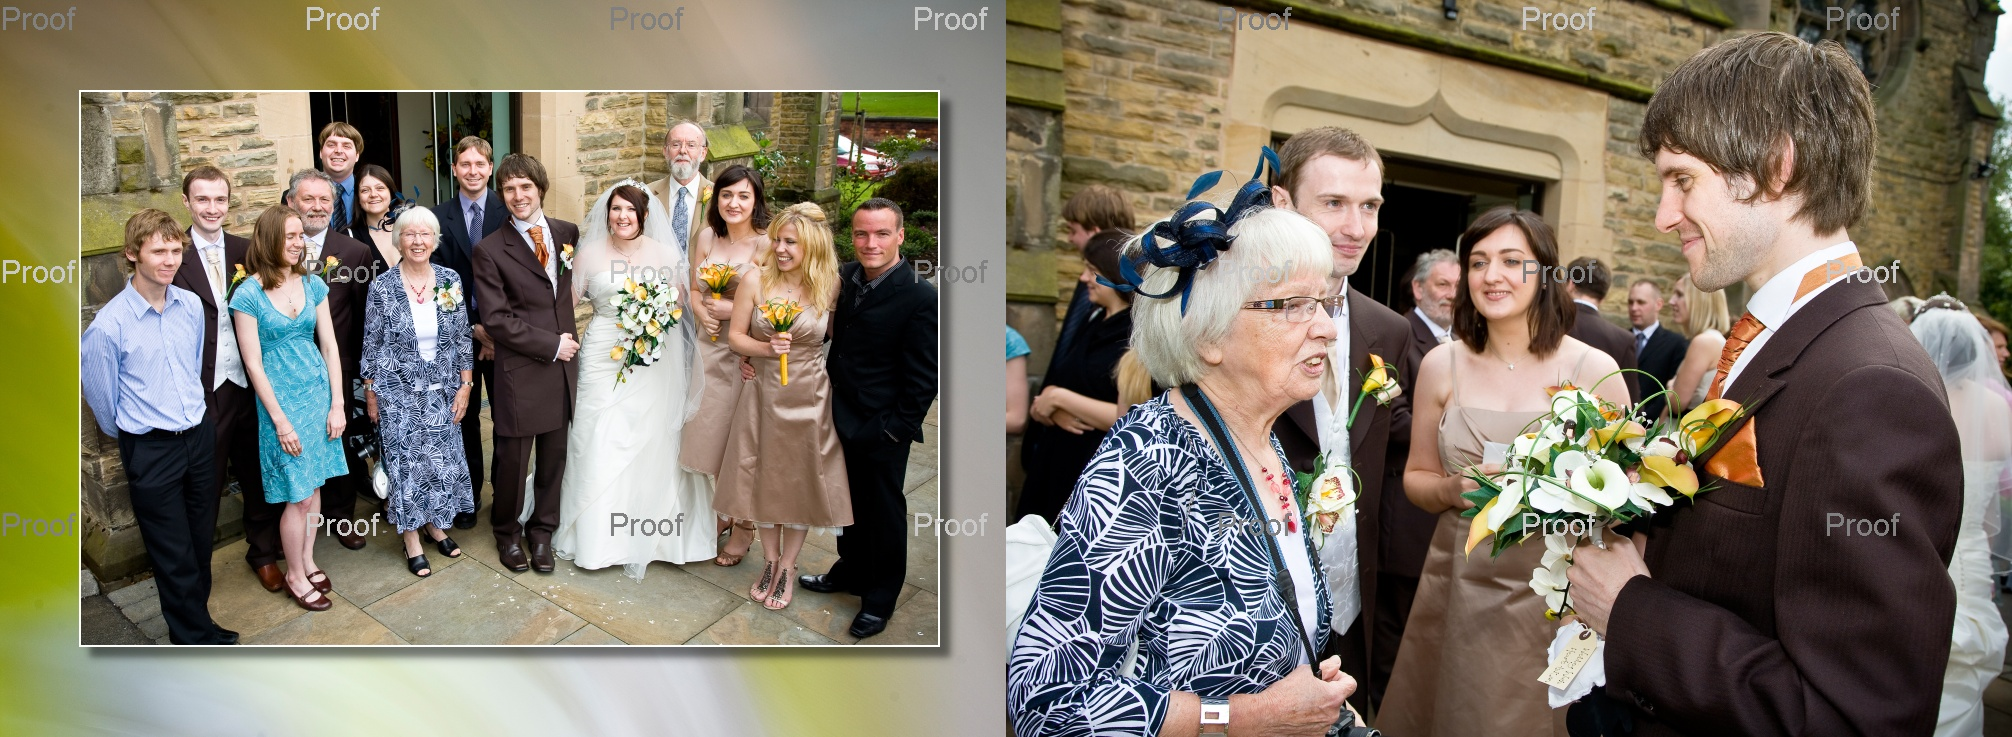 pages 28-29 of wedding storybook album with lovely family pictures after church ceremony